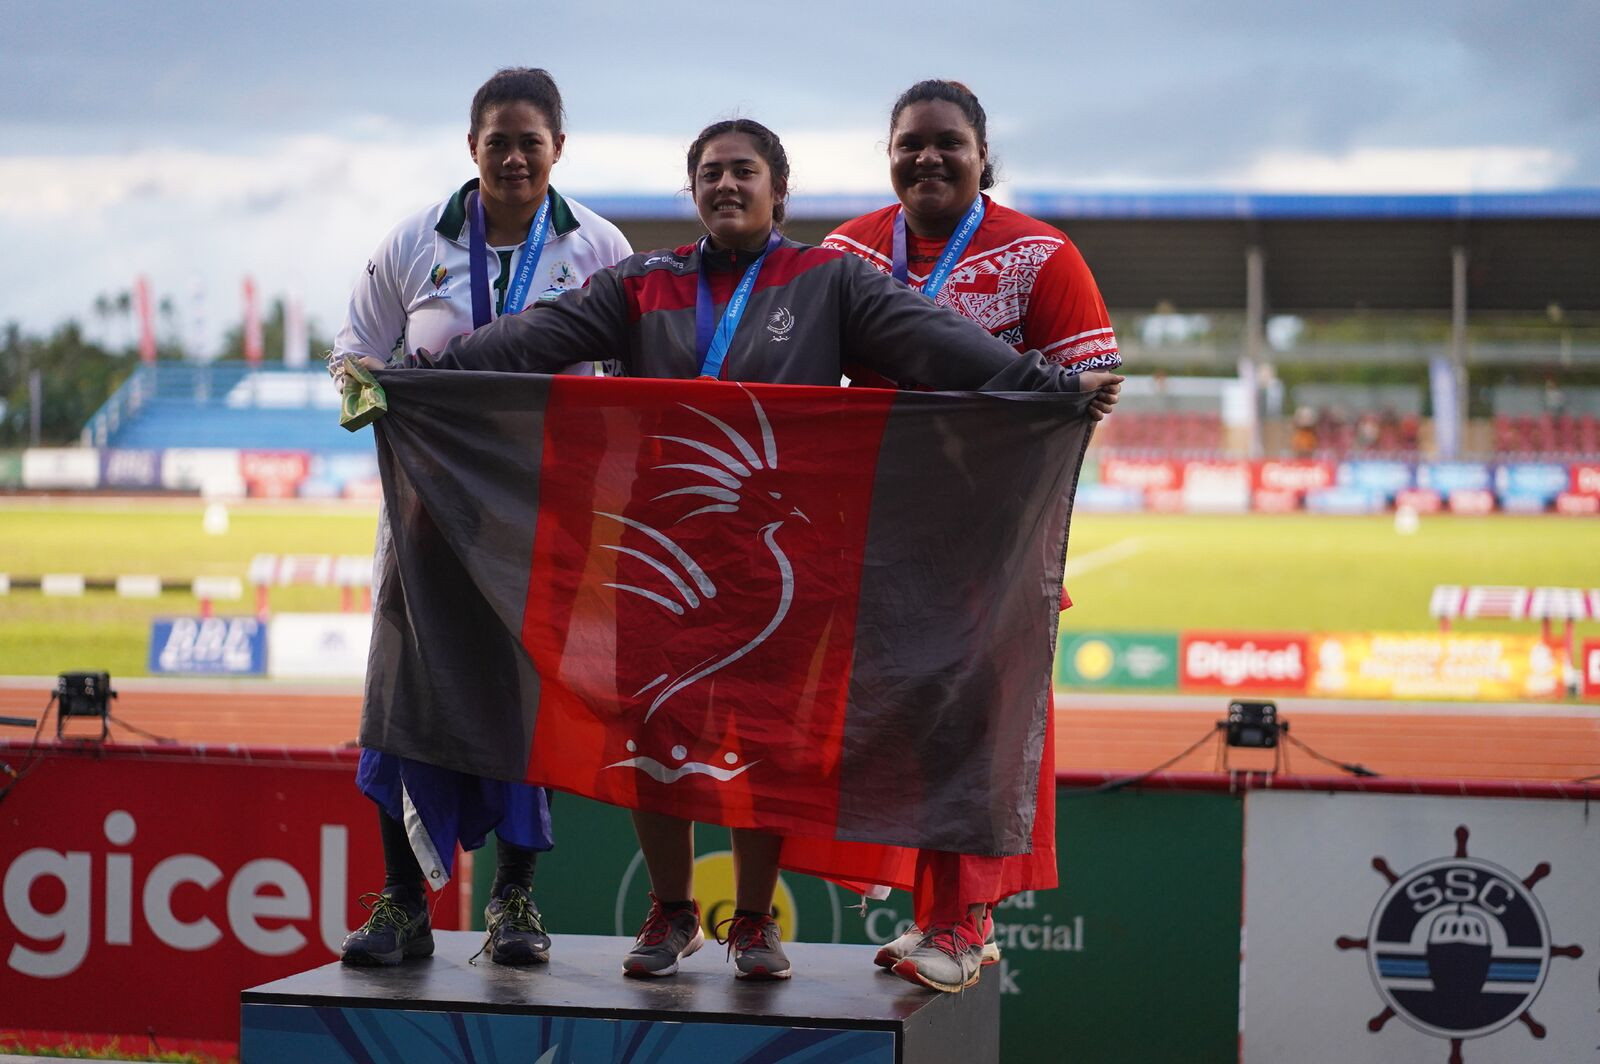 New Caledonia's Lesly Filituulaga celebrates winning the women's discus at the age of just 16 ©Games News Service